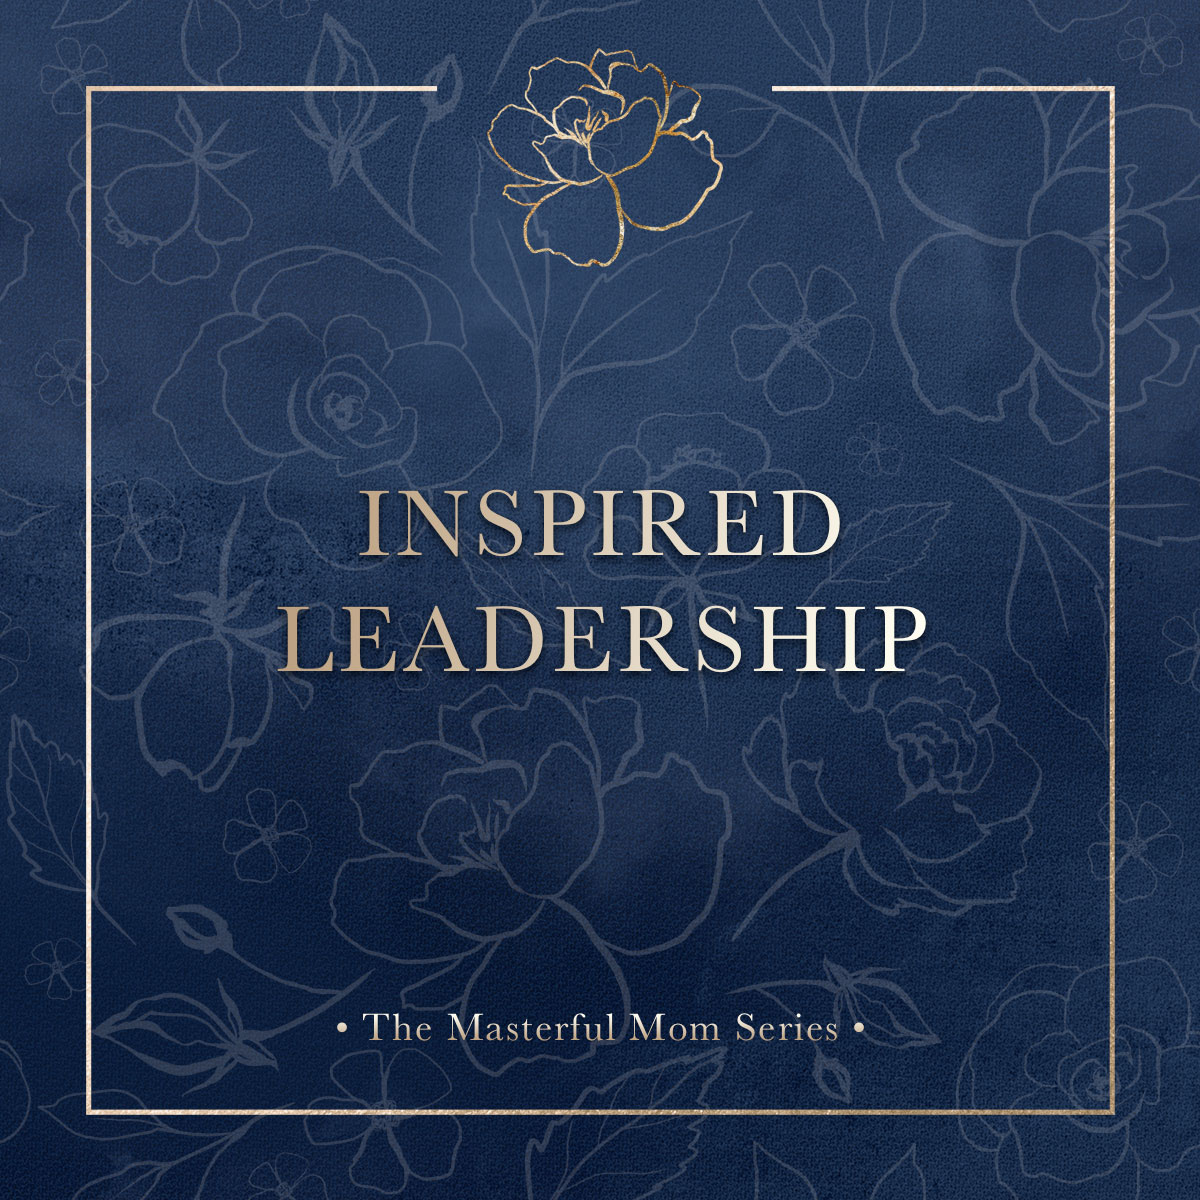 Inspired Leadership Course